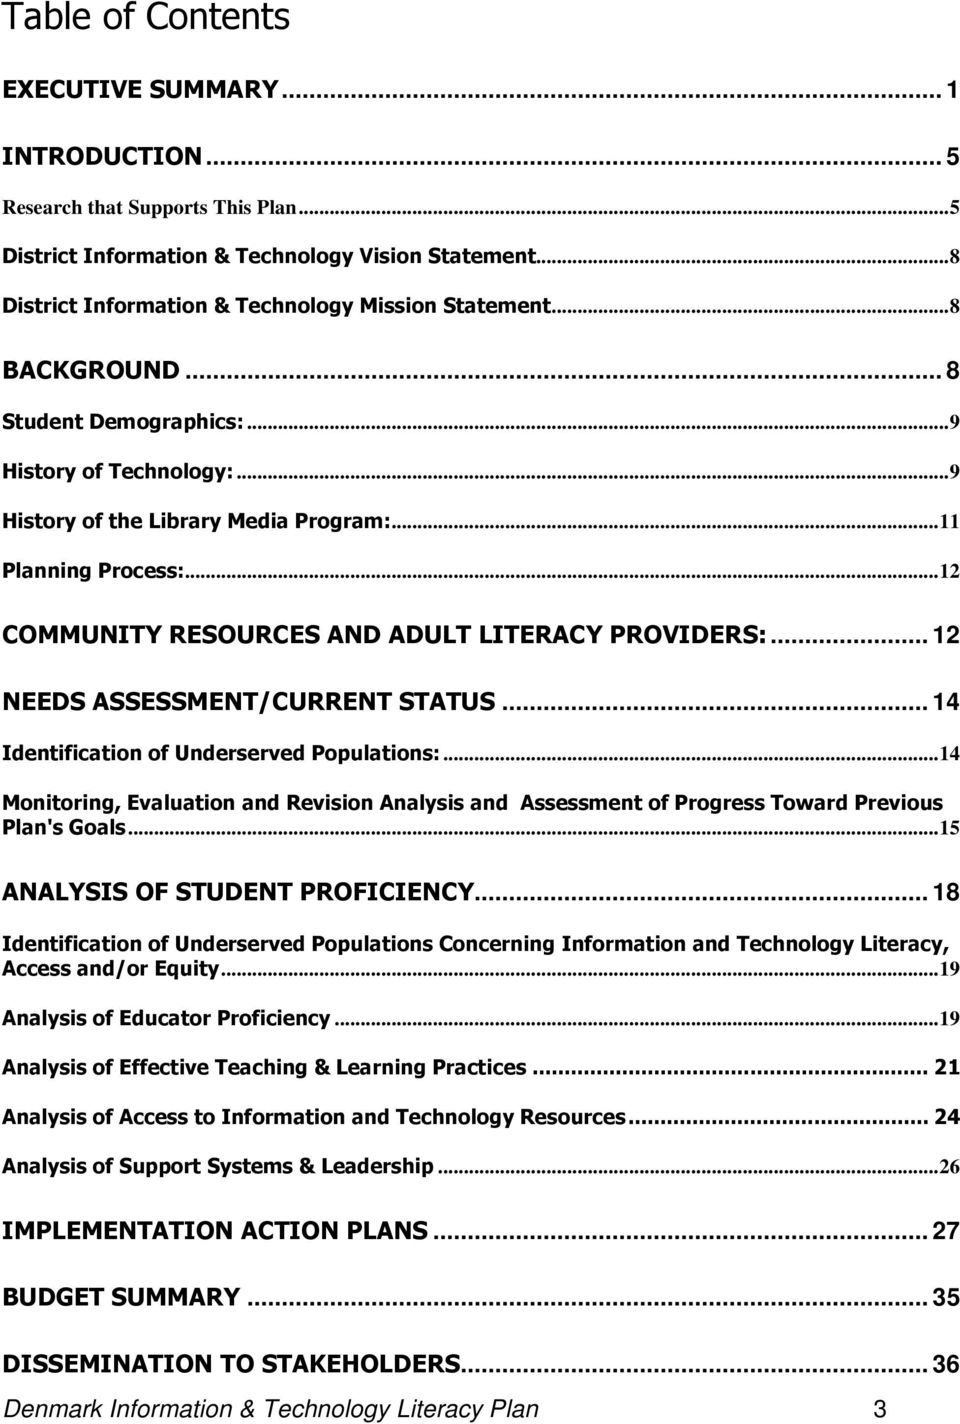 .. 12 COMMUNITY RESOURCES AND ADULT LITERACY PROVIDERS:... 12 NEEDS ASSESSMENT/CURRENT STATUS... 14 Identification of Underserved Populations:.